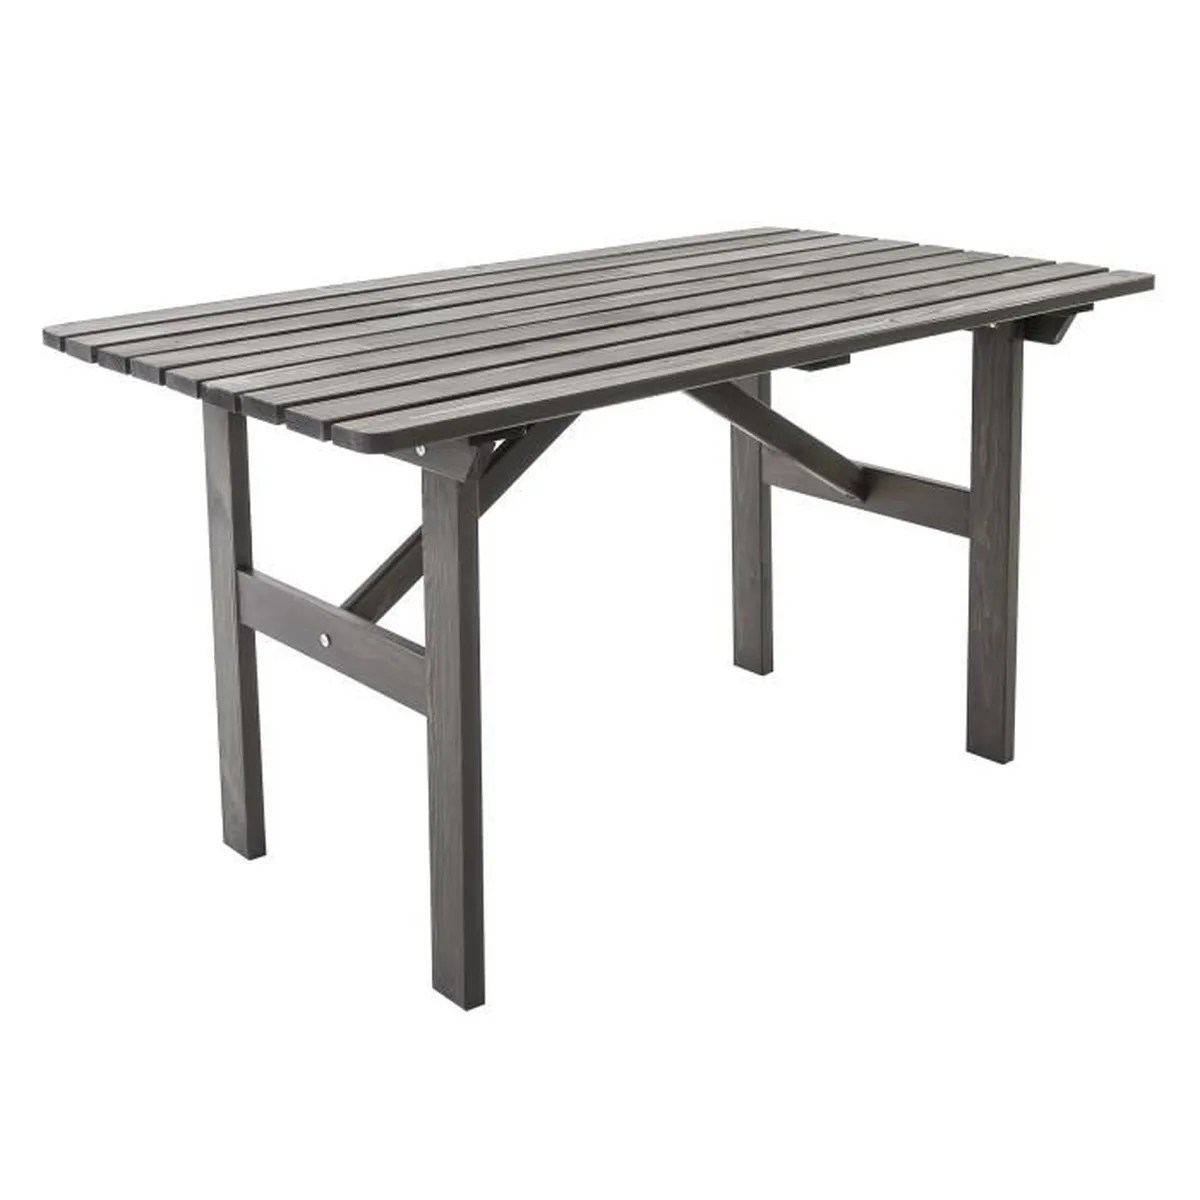 Table Bois Terrasse Table Terrasse En Bois Achat Vente Table Terrasse En